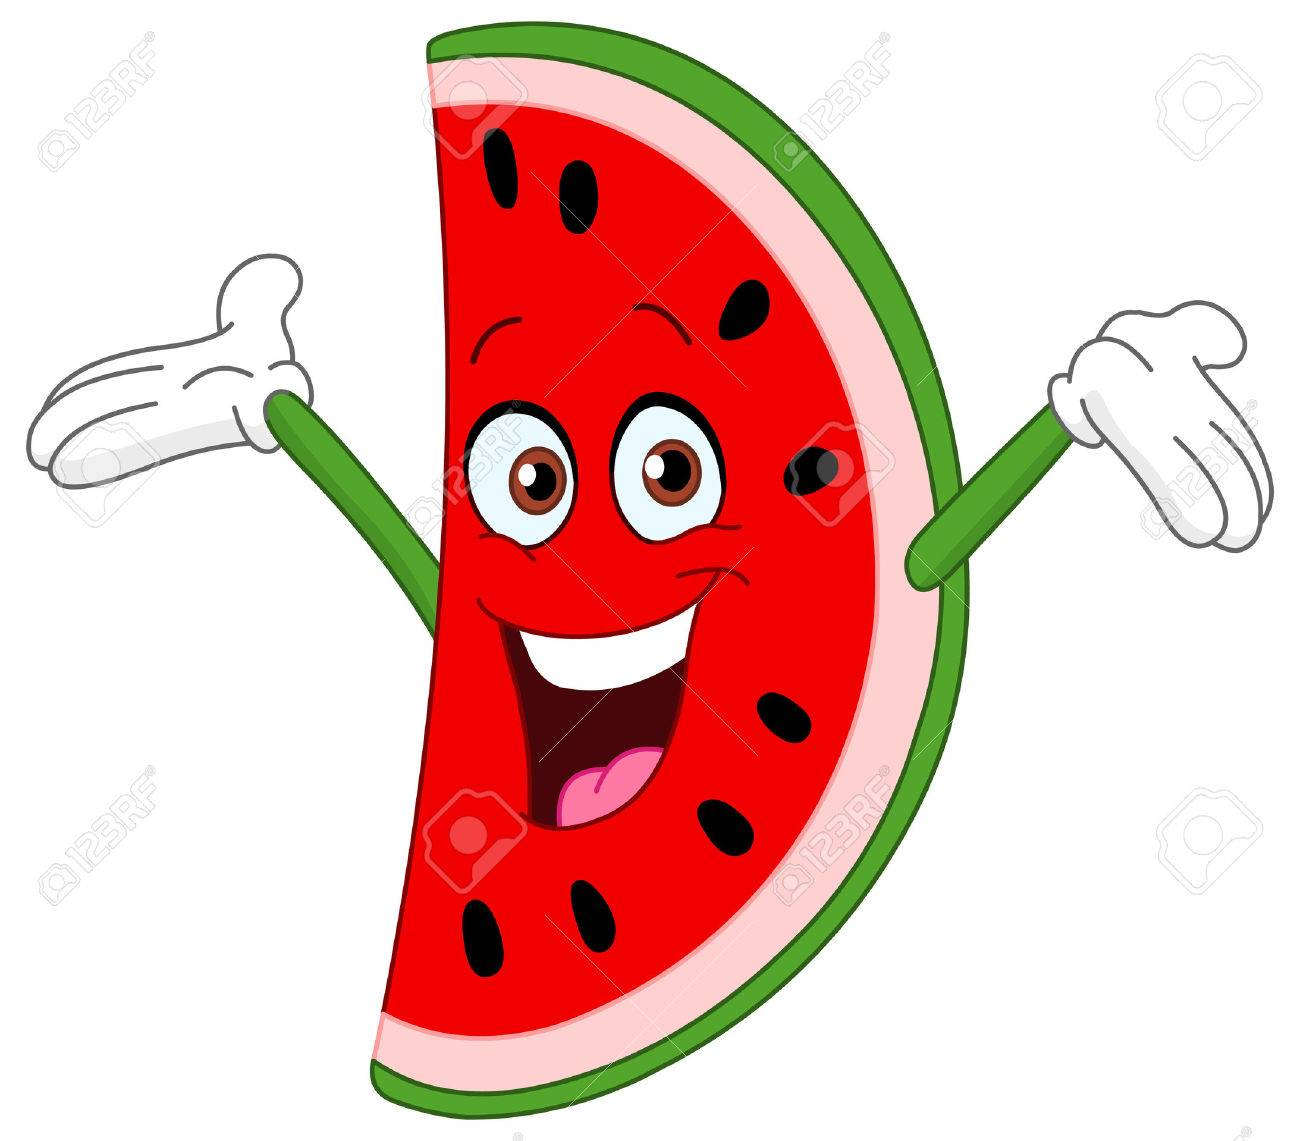 Watermelon Slice Images, Stock Pictures, Royalty Free Watermelon ...